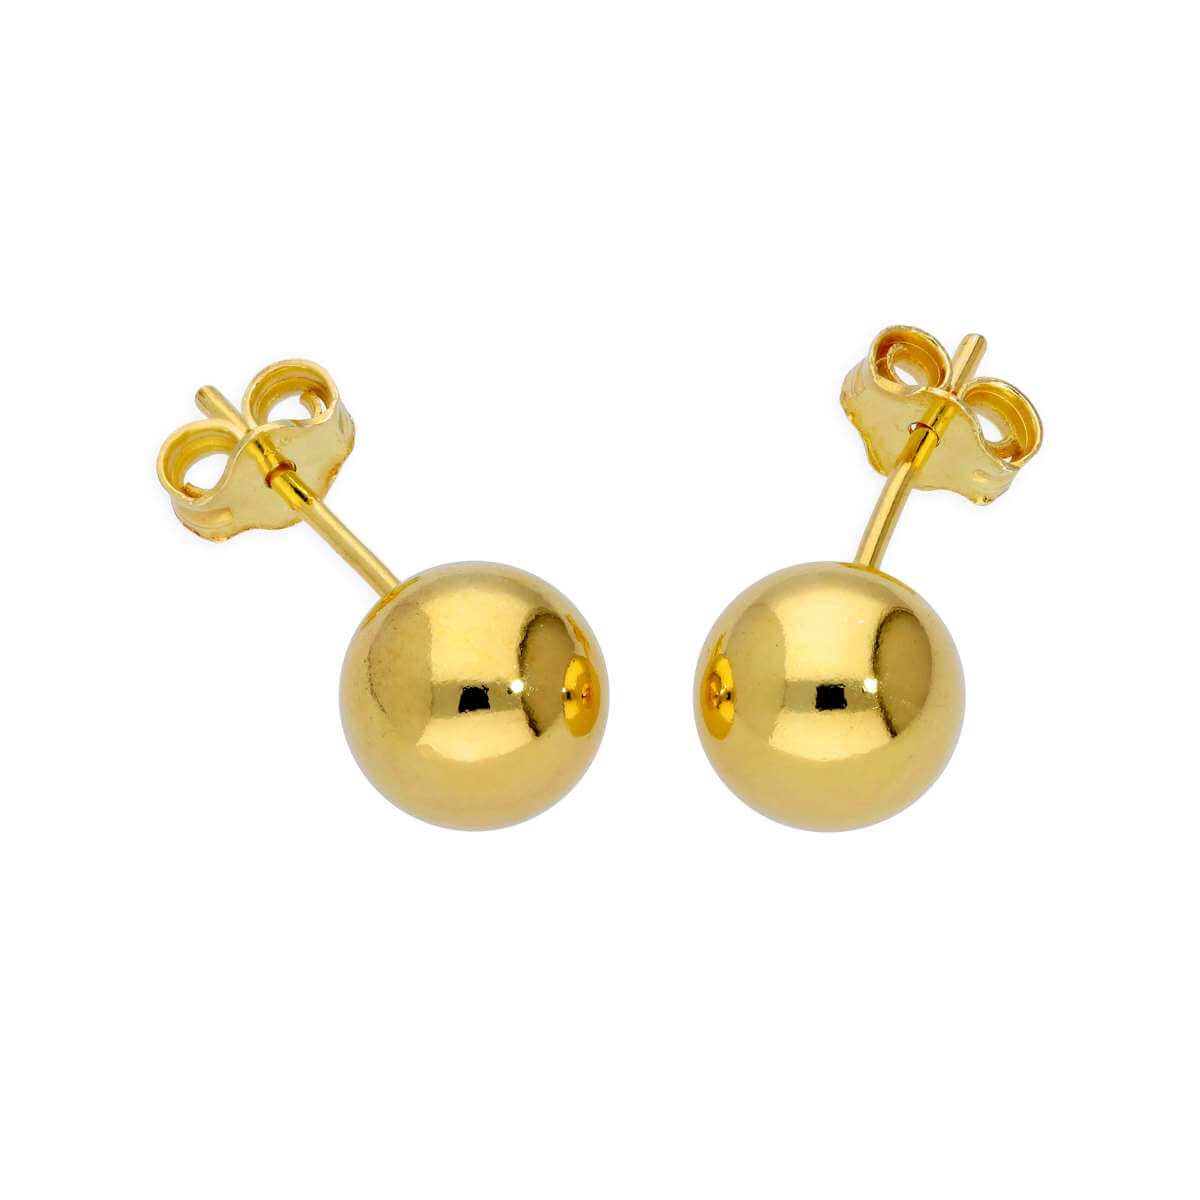 Yellow Gold Plated Sterling Silver Lightweight 7mm Ball Stud Earrings